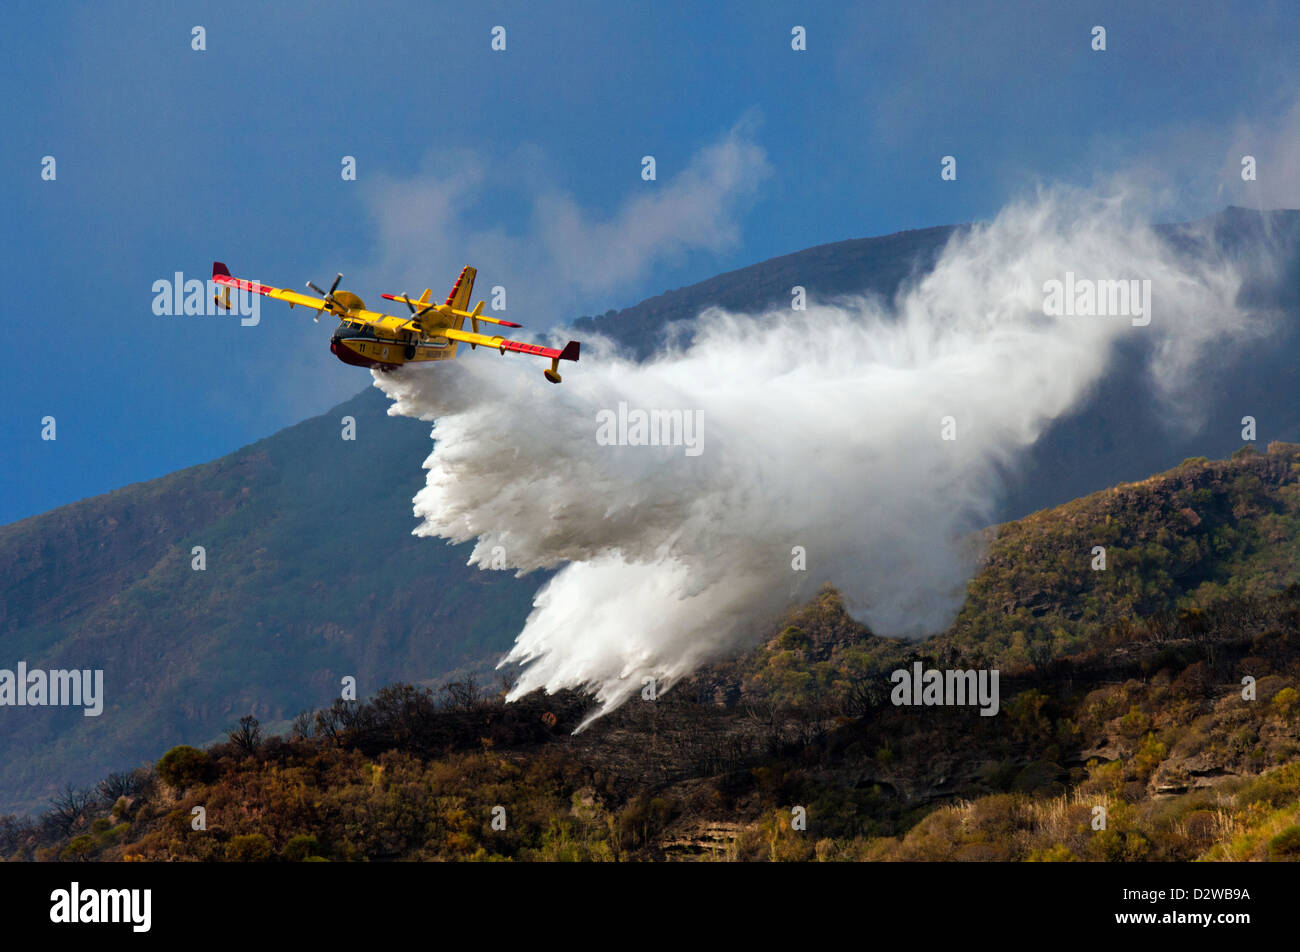 Canadair fire fighting plane flying over Stromboli island trying to extinguish a fire in Sicily, Italy. - Stock Image